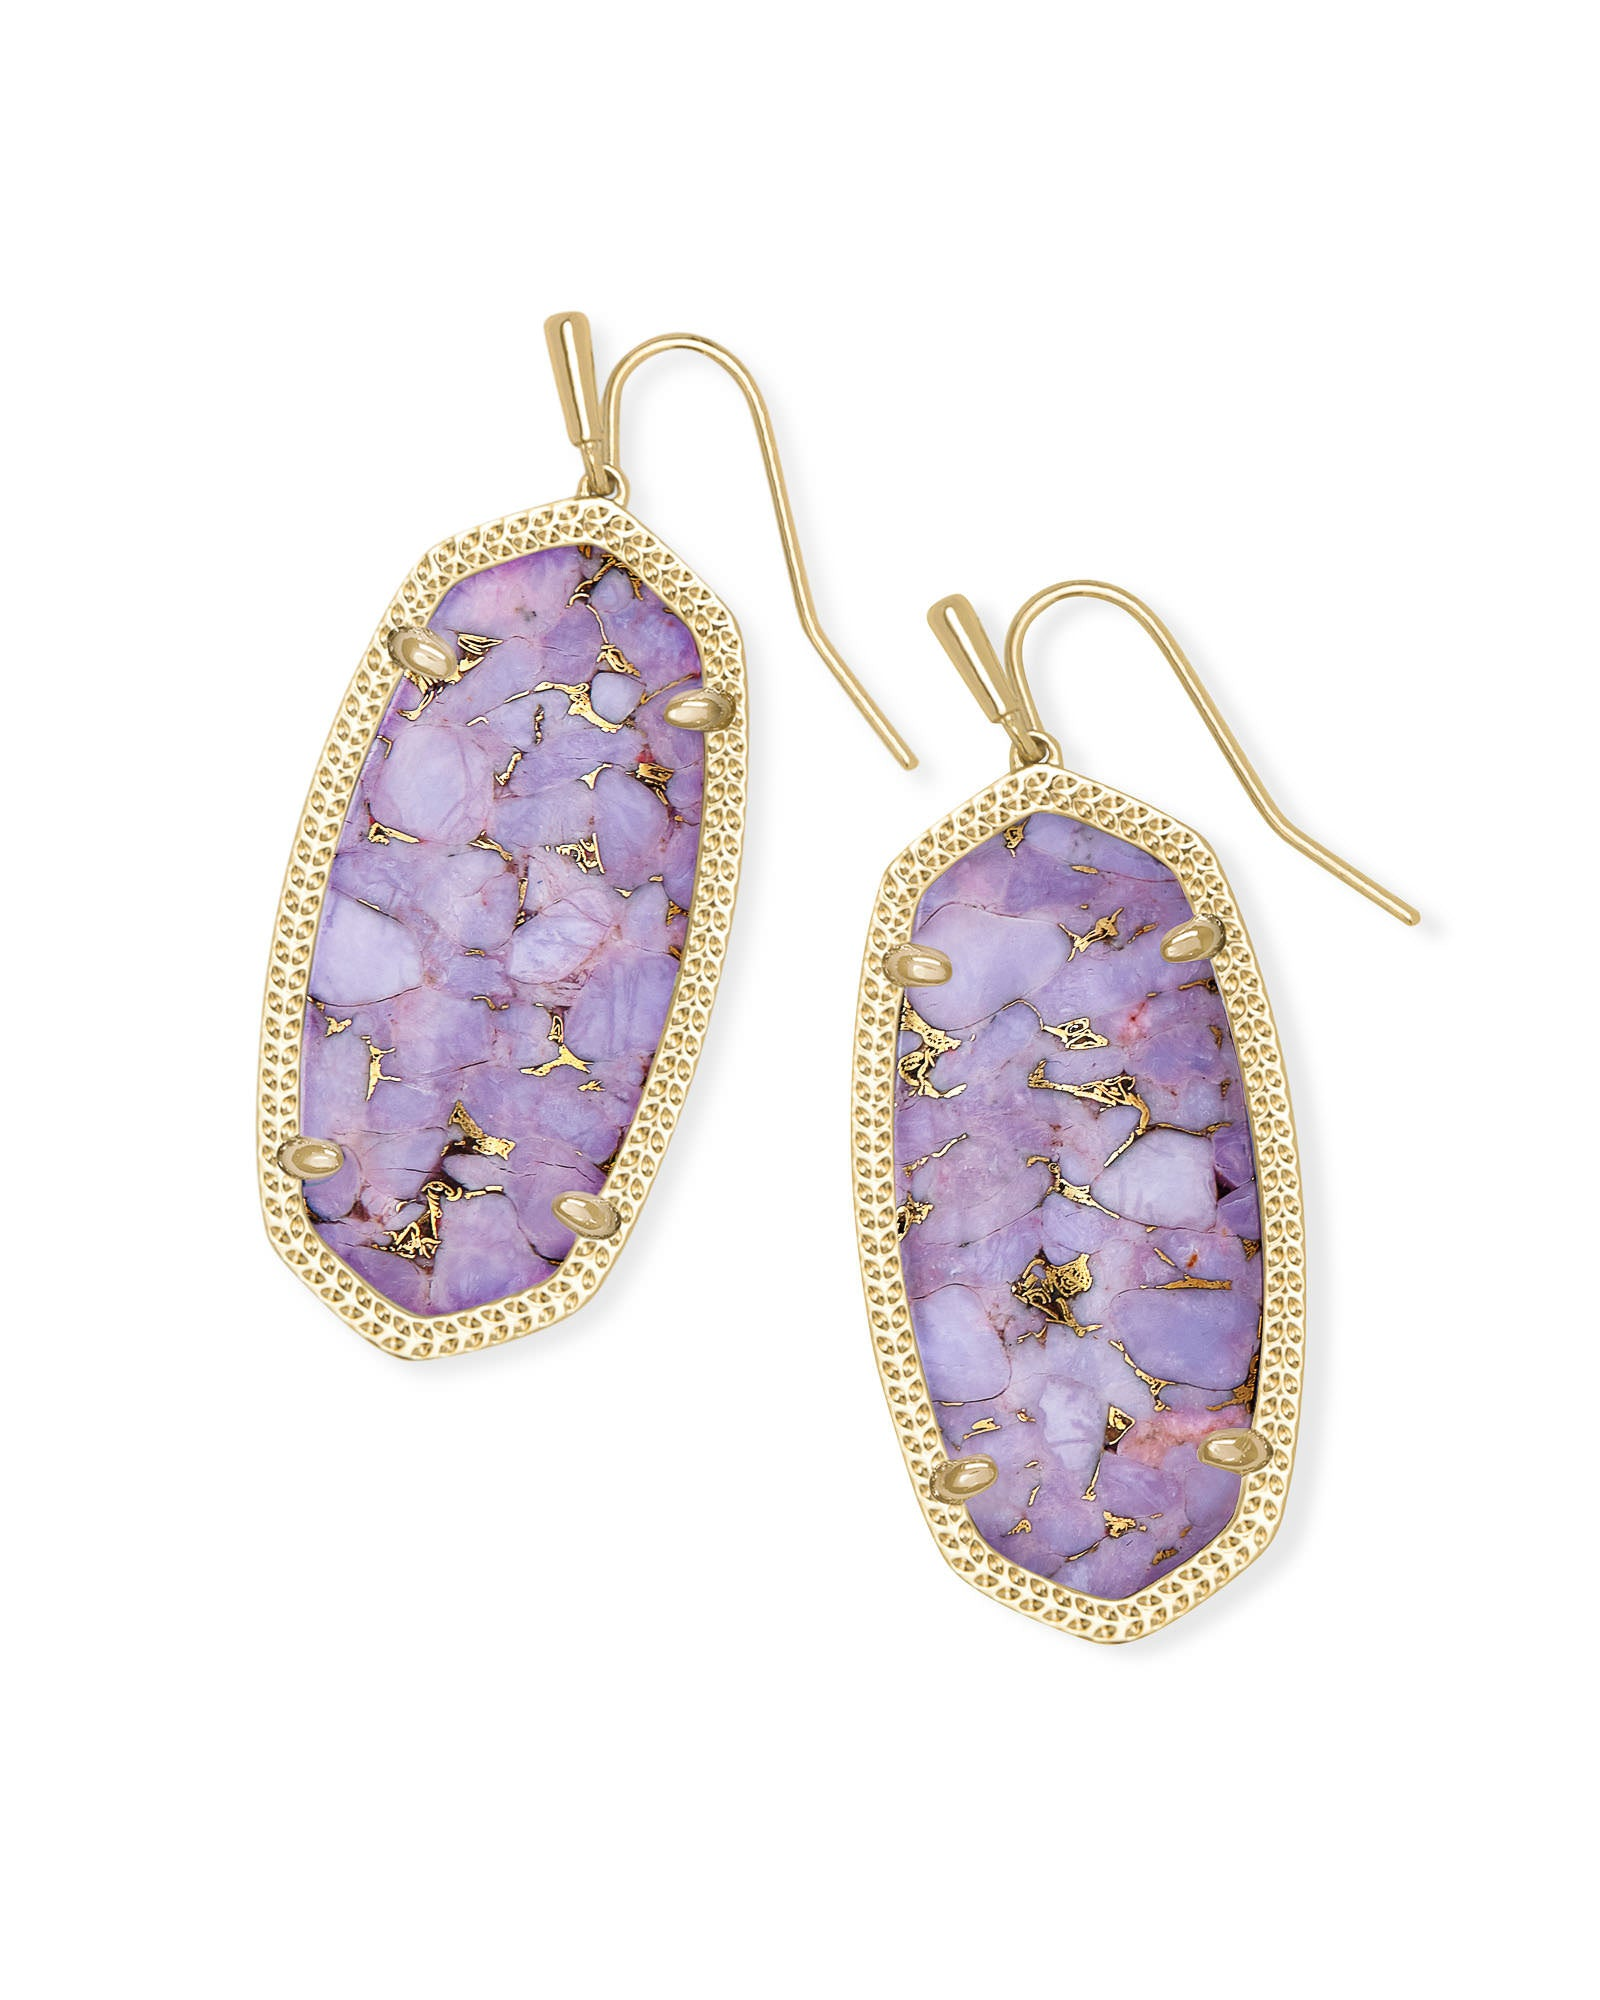 Kendra Scott Elle Gold Drop Earrings In Bronze Veined Lilac Magnesite